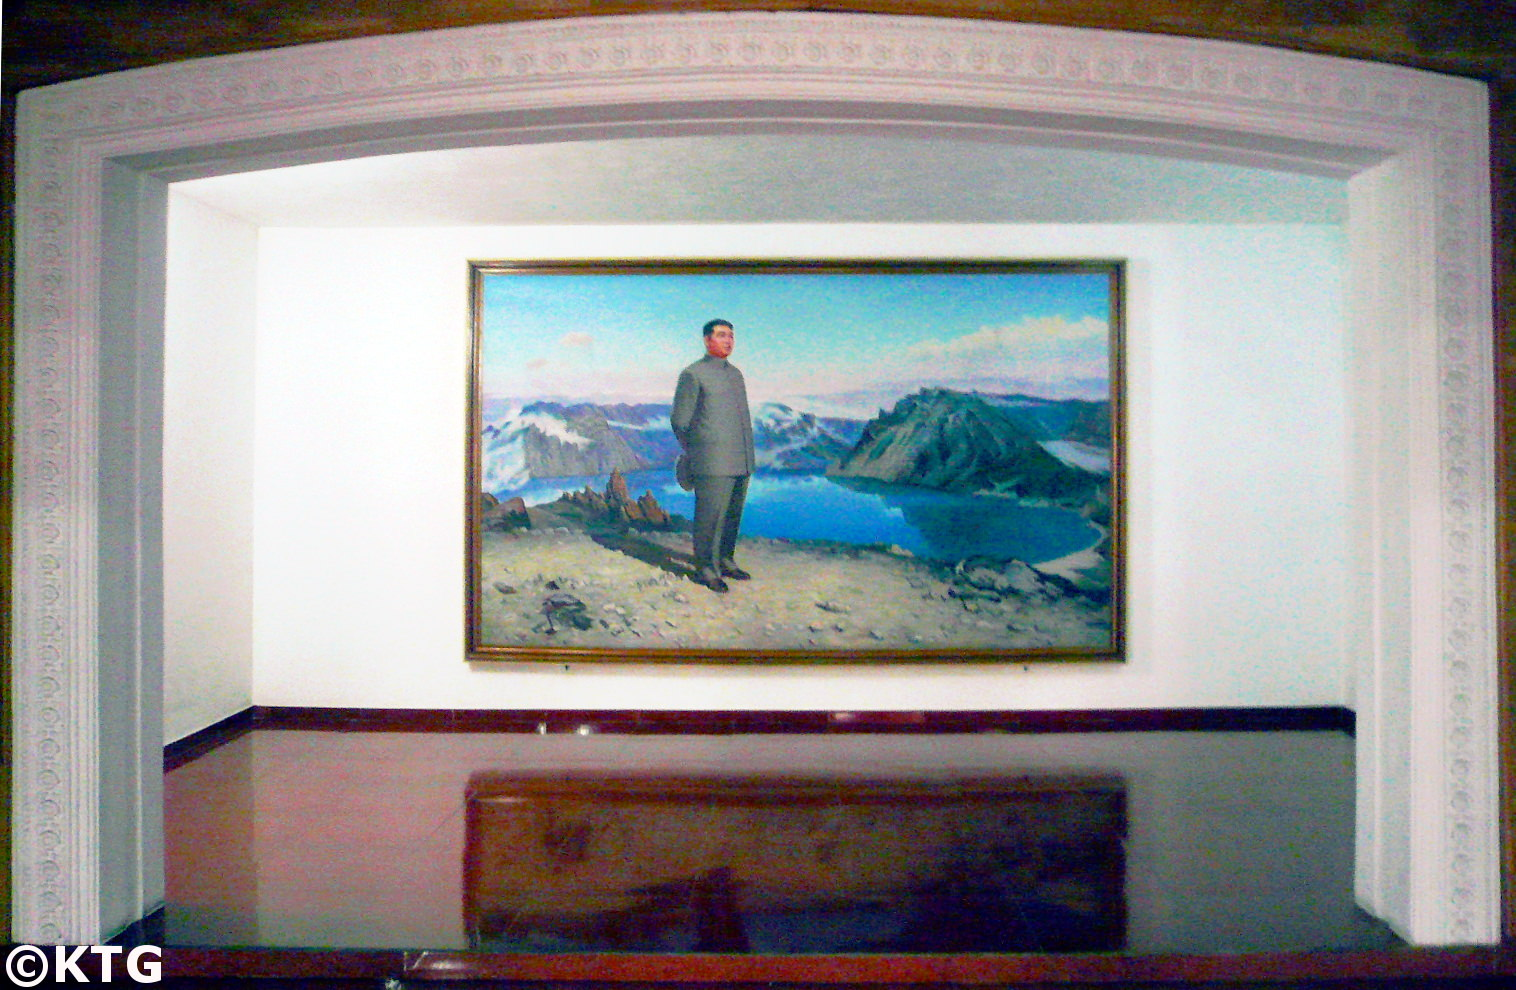 Painting of President Kim Il Sung on Mount Paektu in the Sinsunhang hotel in the industrial city of Hamhung, the second largest city of North Korea (DPRK). Picture taken by KTG Tours